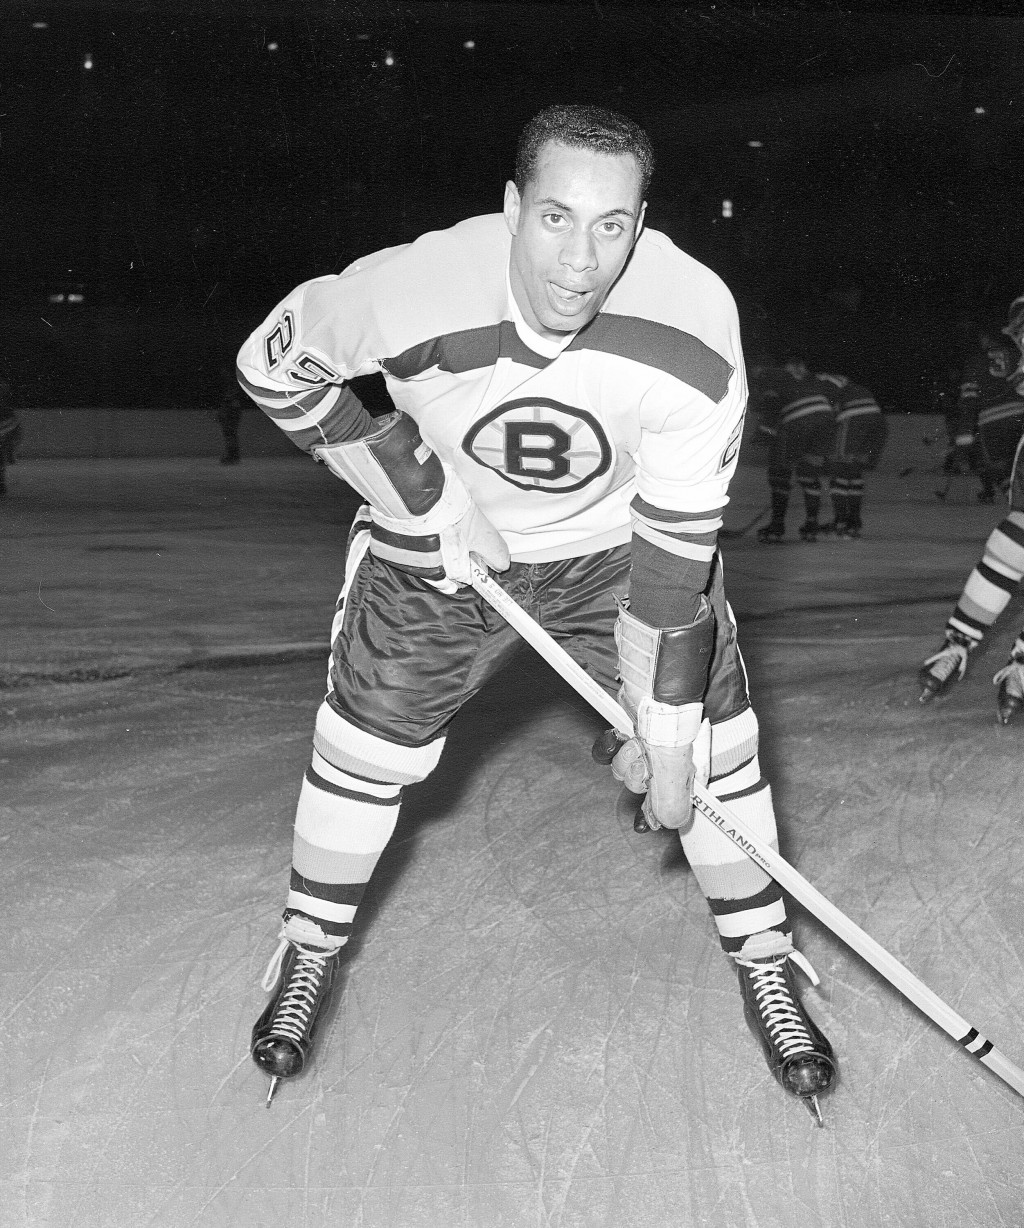 FILE - In this November 23, 1960 file photo, 25-year-old left wing Willie O'Ree, the first black player of the National Hockey League, warms up in his